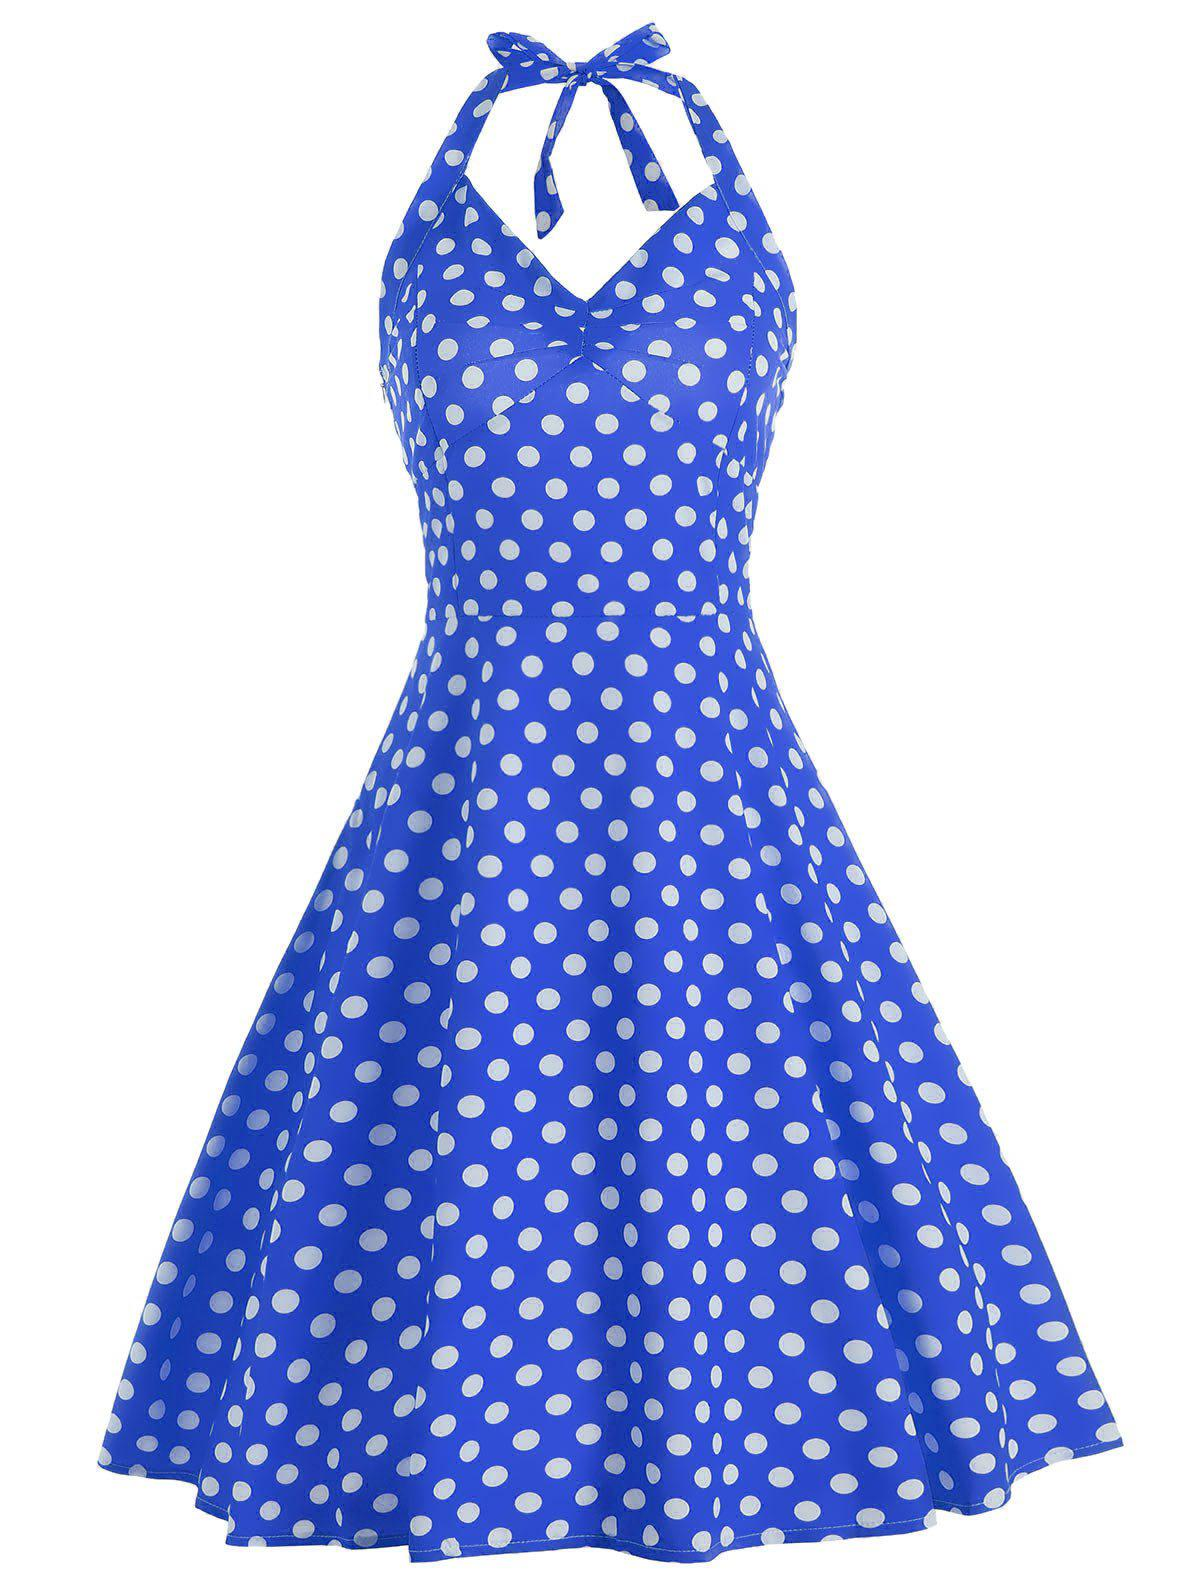 Polka Dot Lace Up Halter A Line Dress polka dot lace up halter a line dress